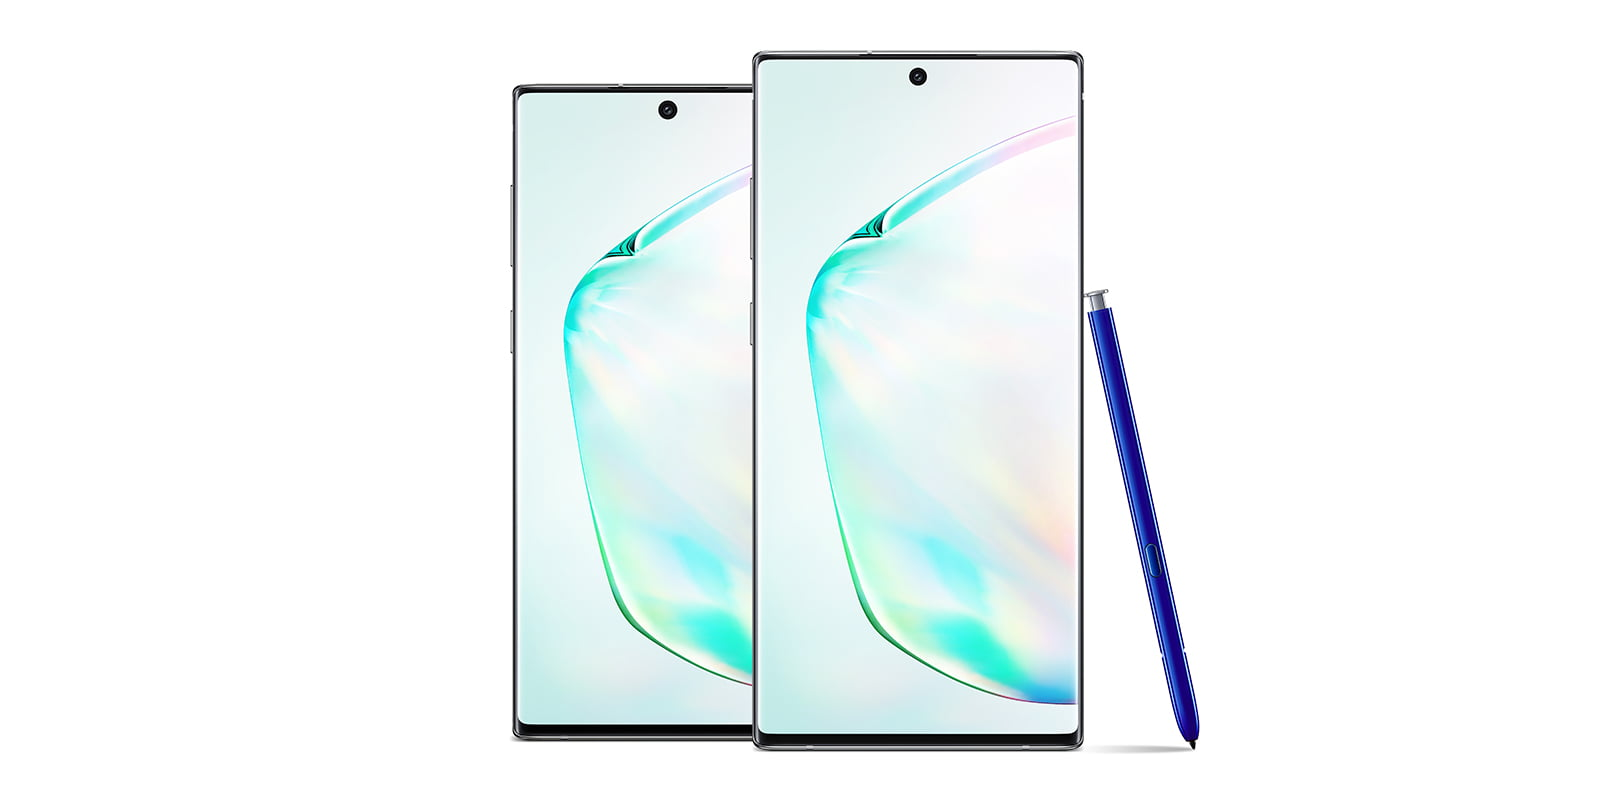 Photo of Samsung Galaxy Note 10 and Note 10 Plus from front